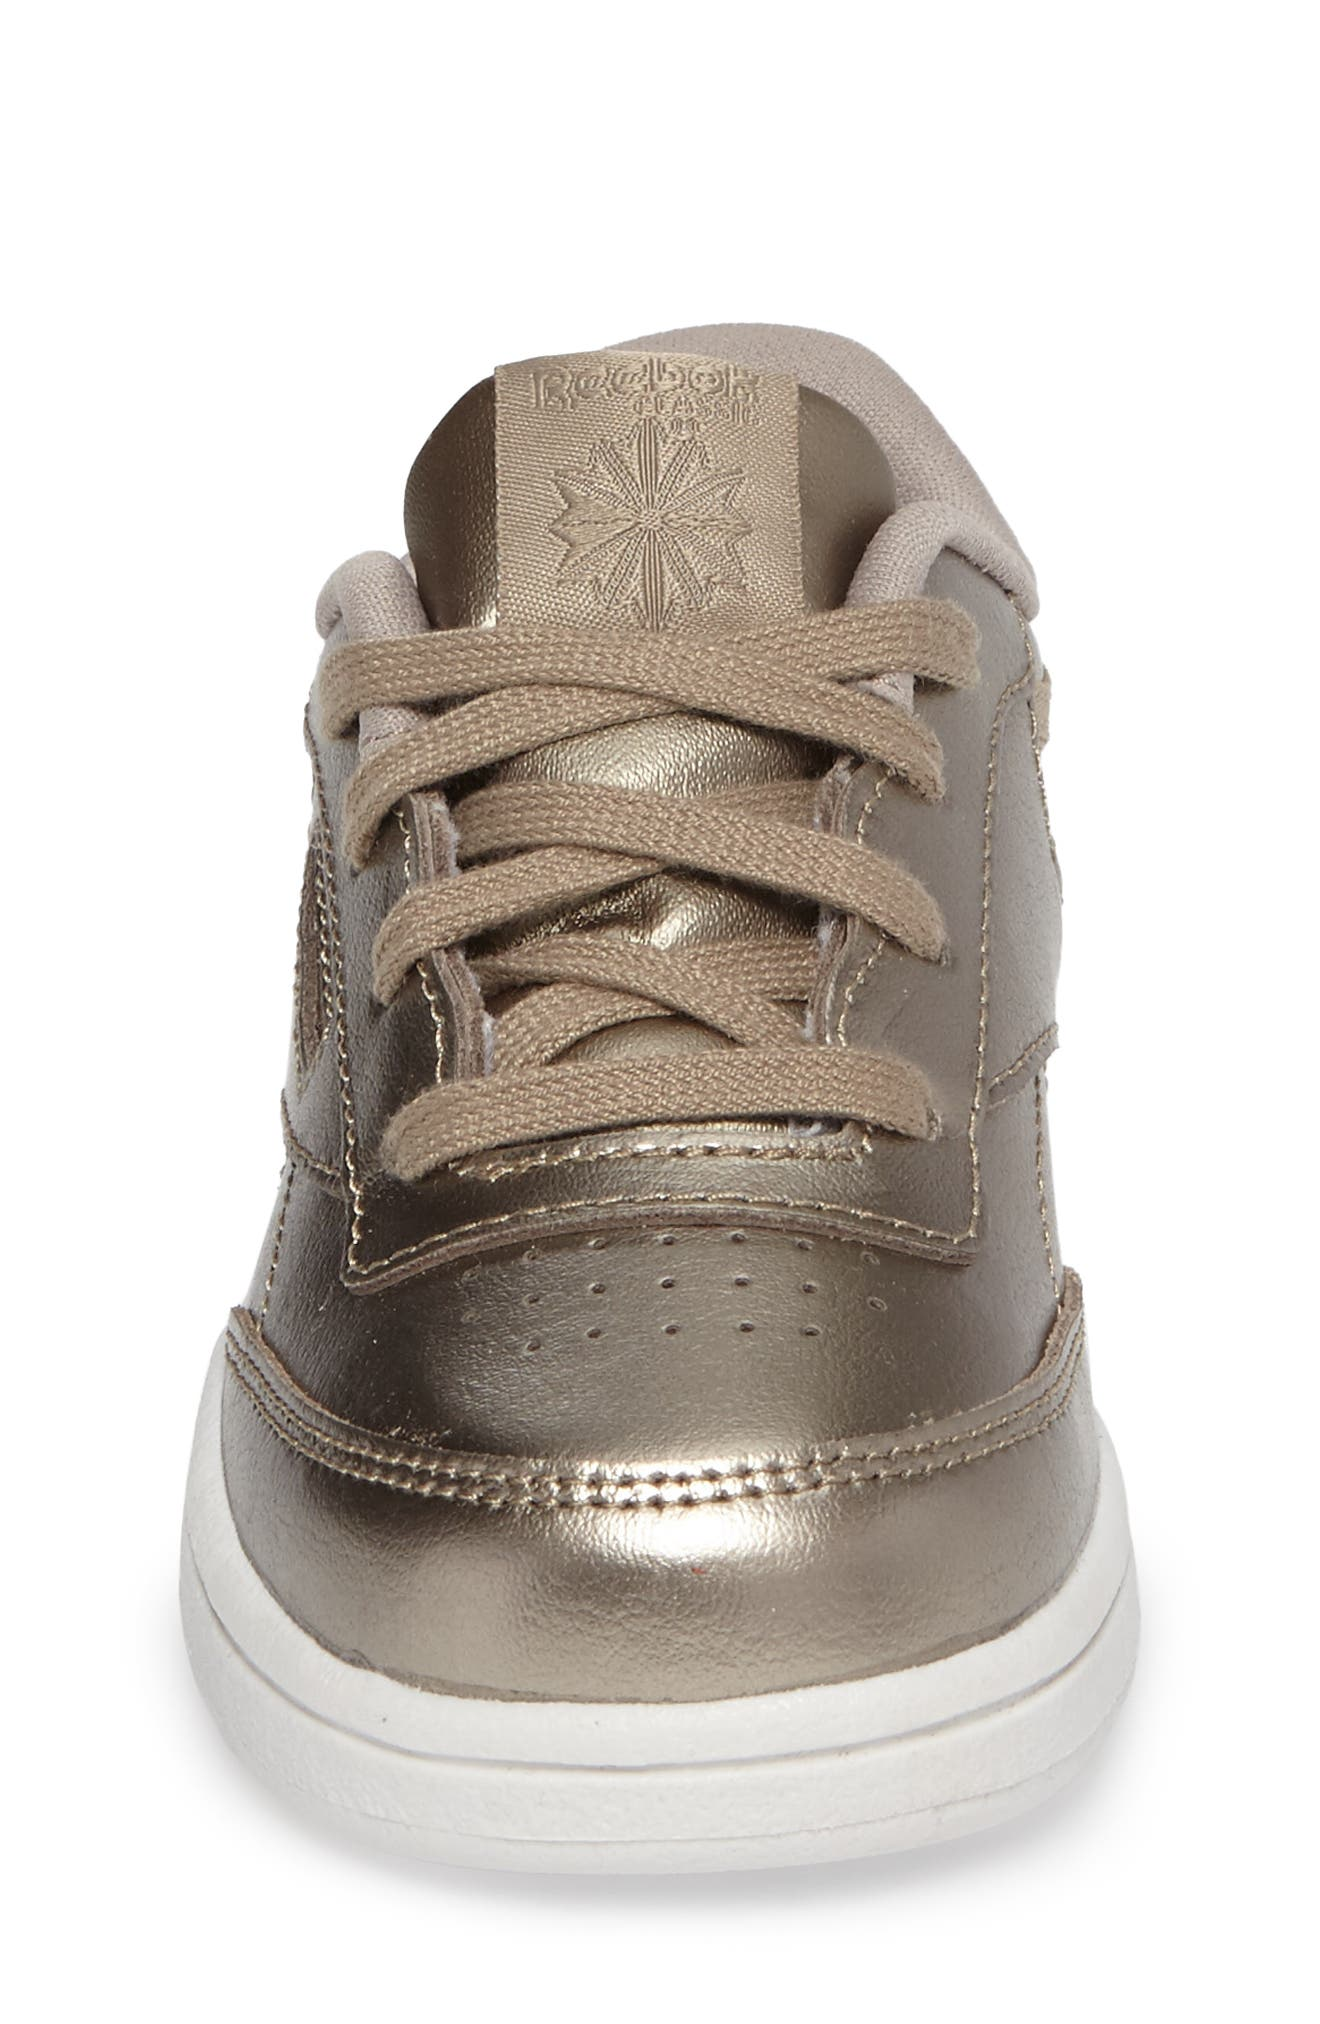 Alternate Image 4  - Reebok Club C Melted Metallic Sneaker (Baby, Walker & Toddler)